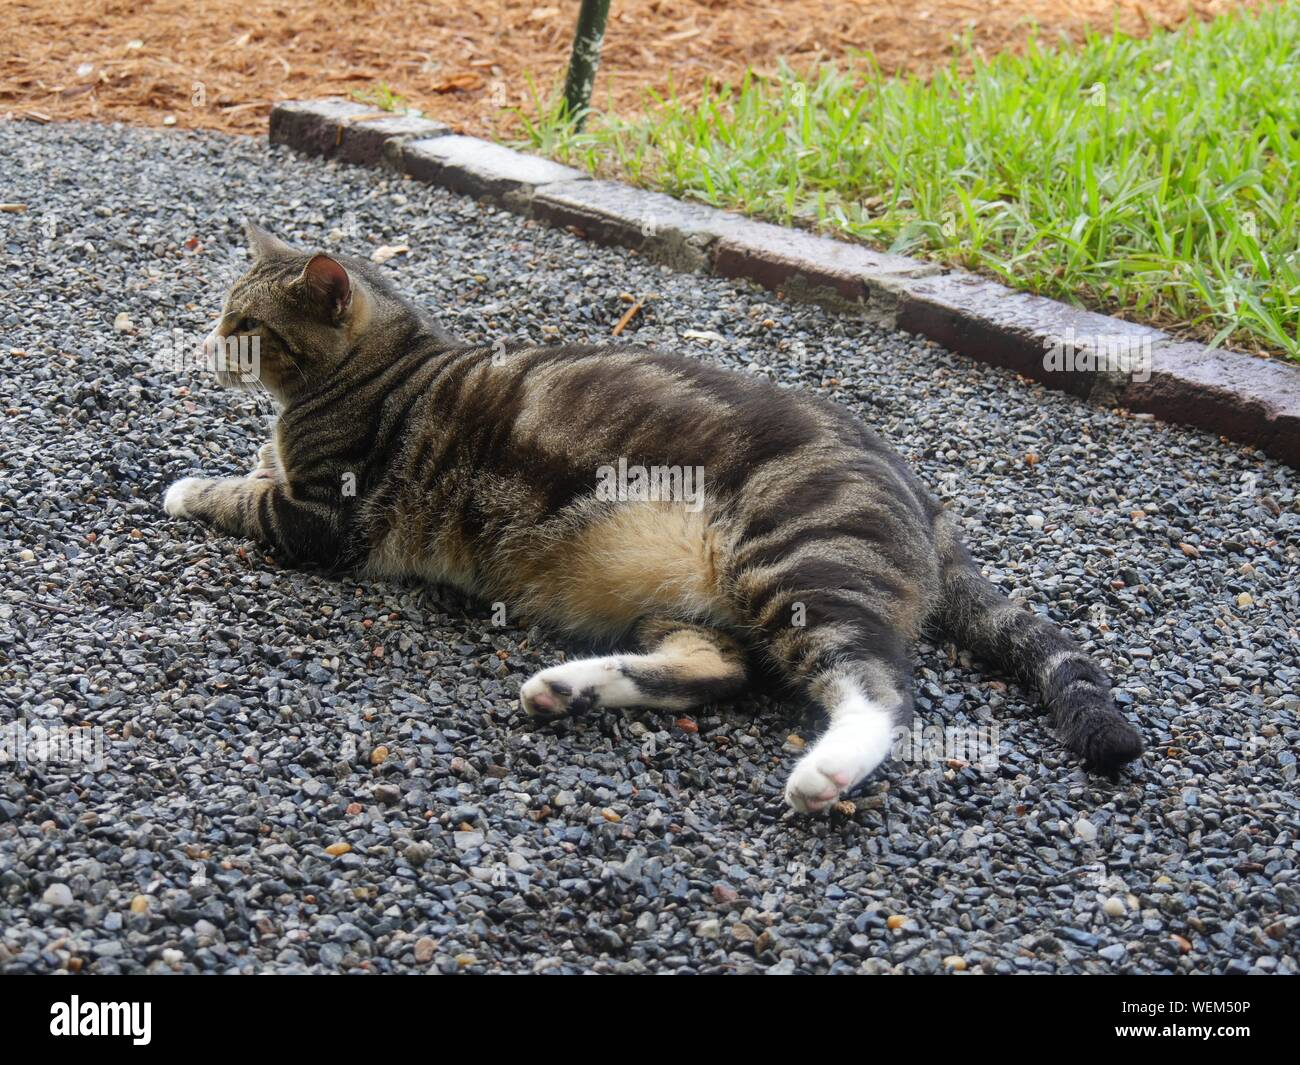 A pampered cat on the grounds at the Ernest Hemingway gardens in Key West, Florida. Stock Photo